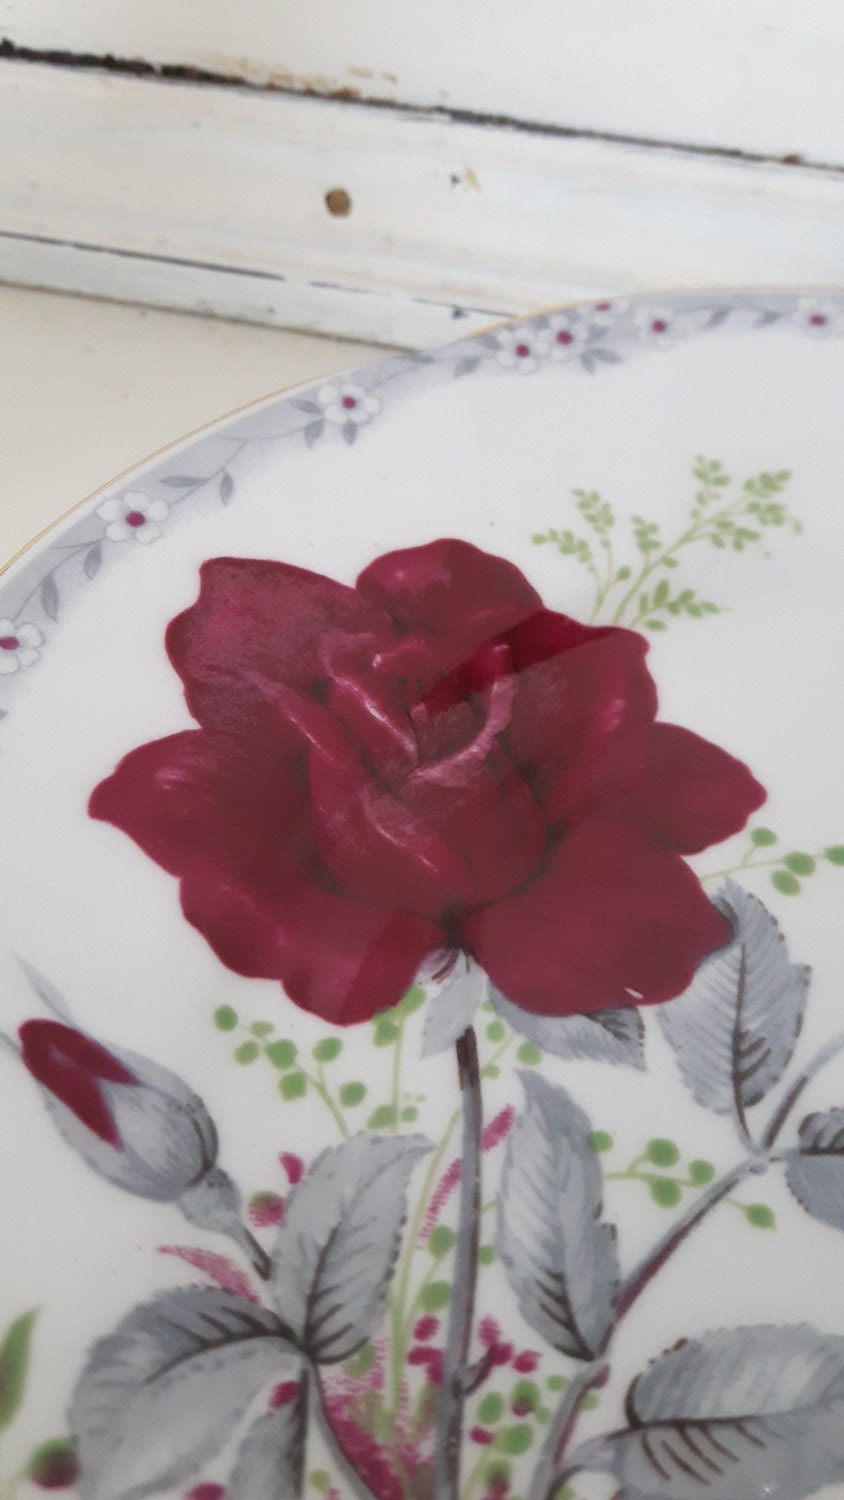 Hand made vintage china cake stand, trinket stand, beautiful rose covered design